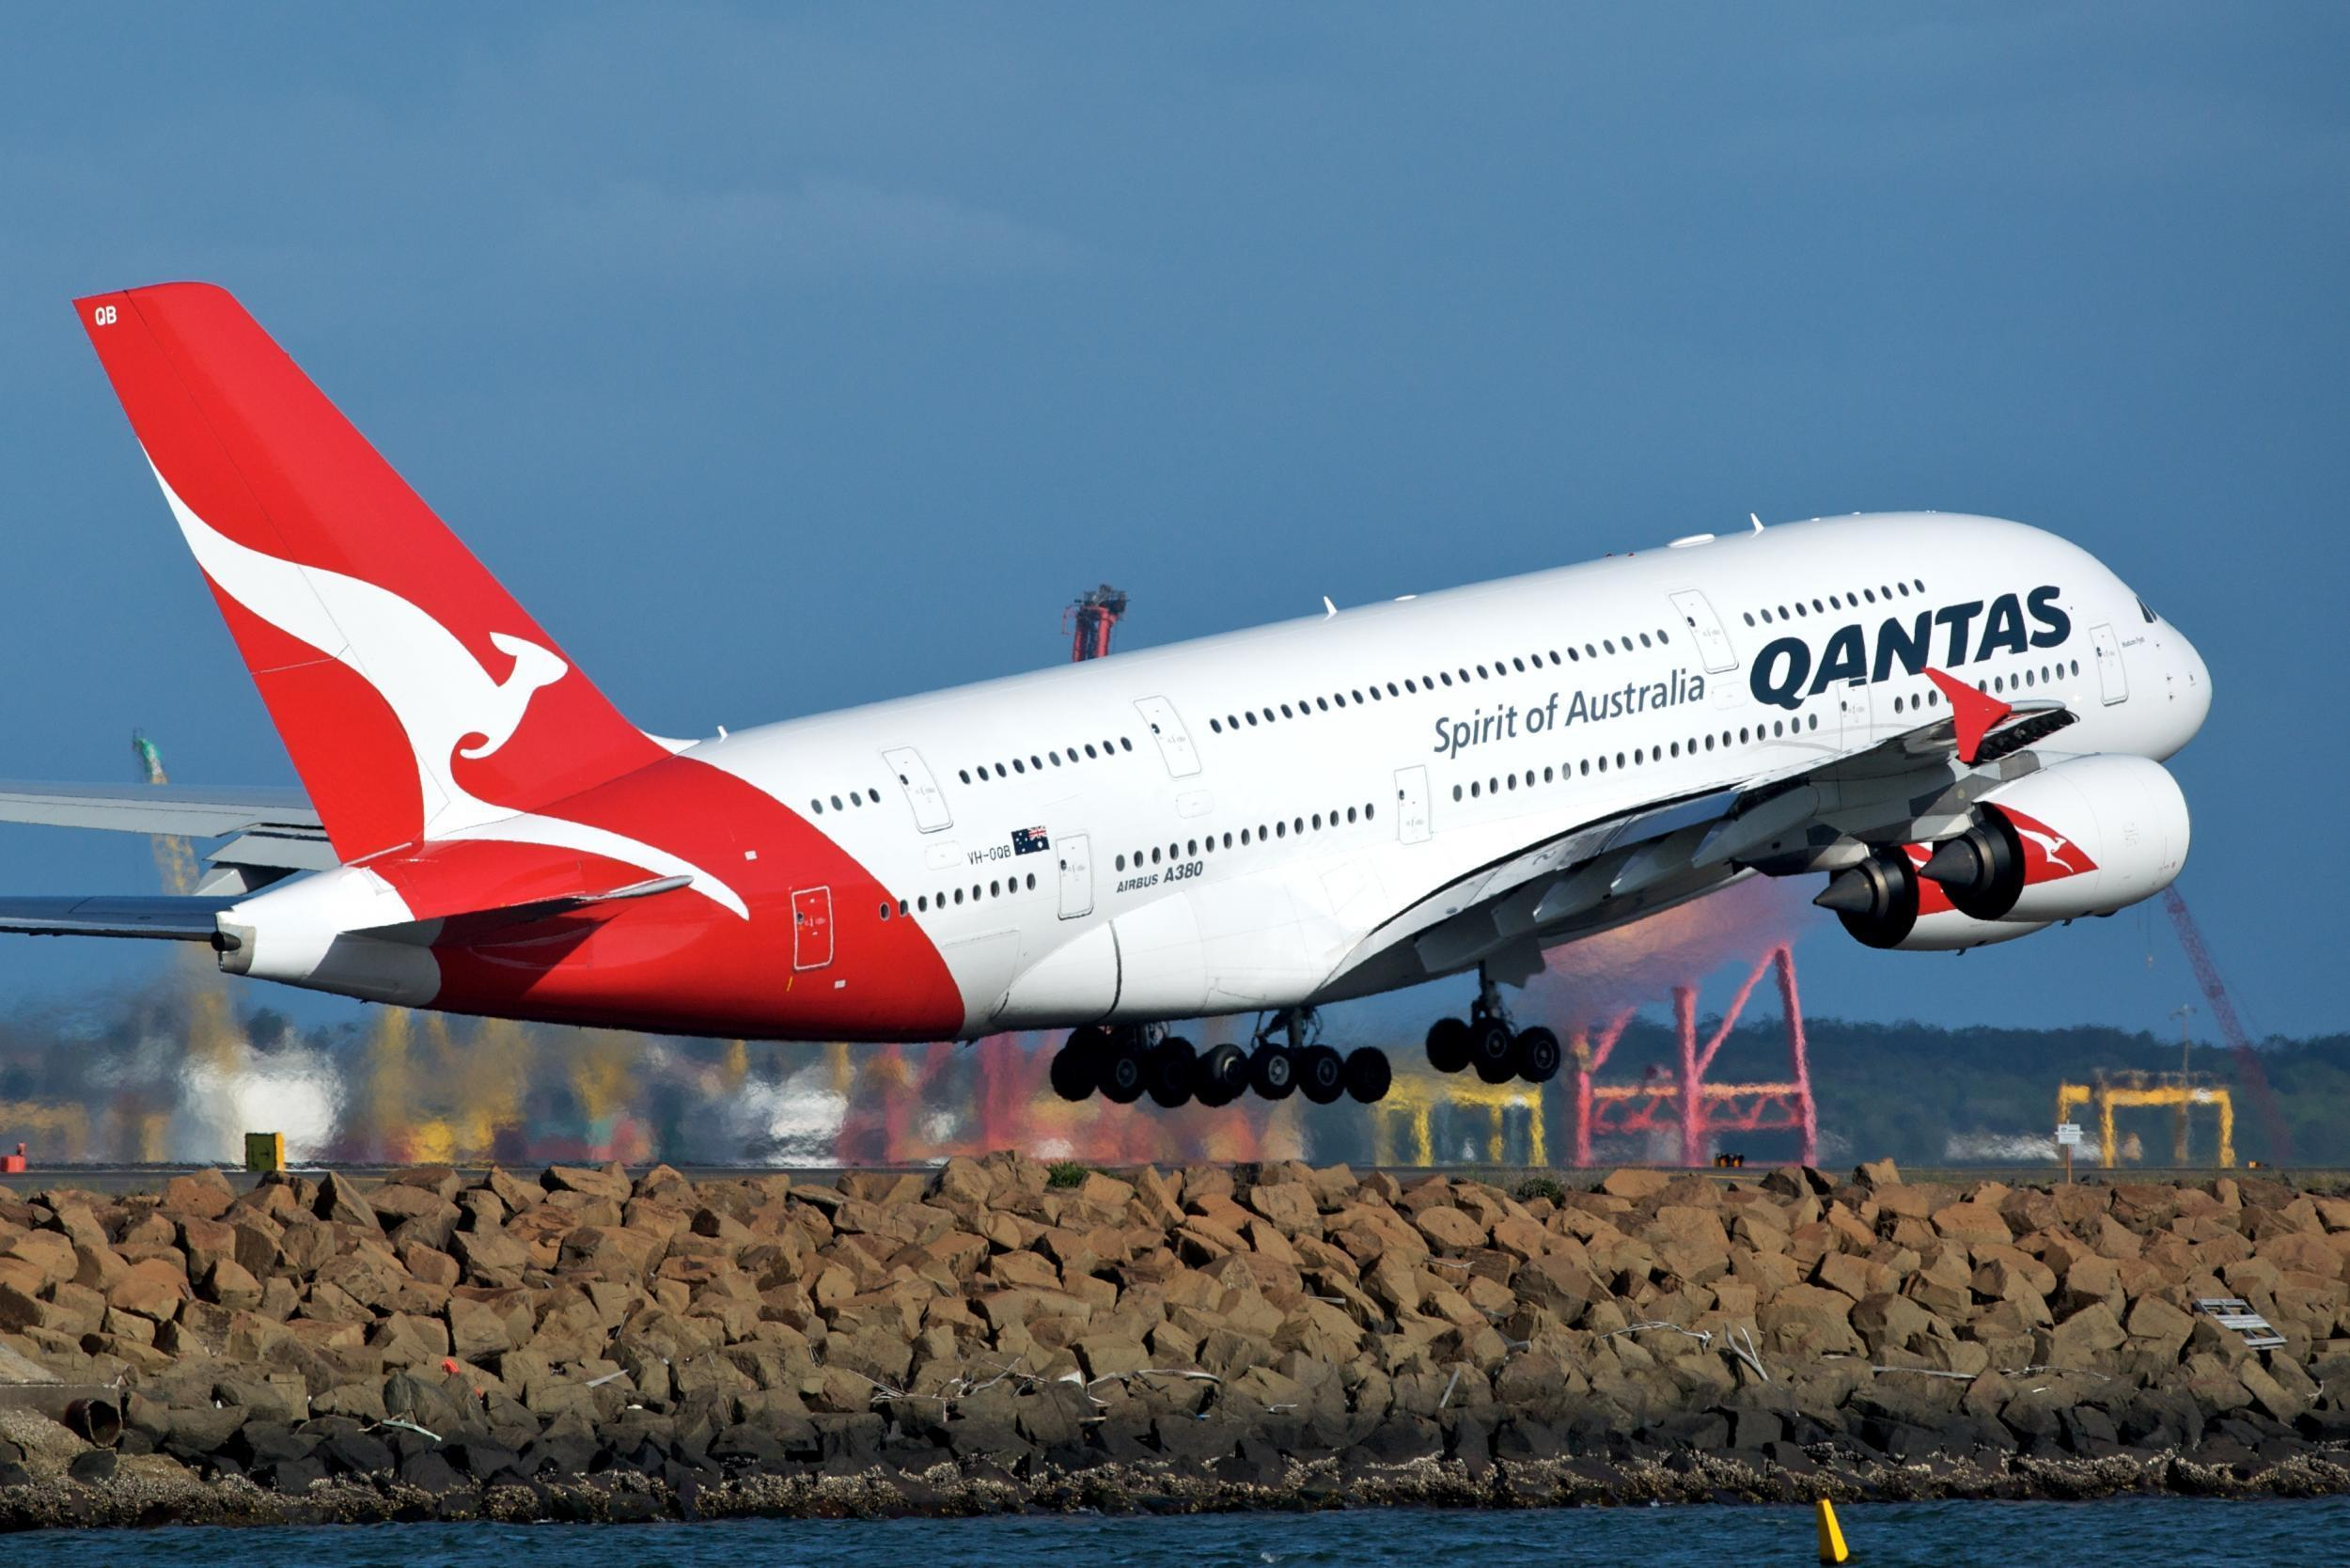 Qantas flight sold to anywhere within 10 minutes